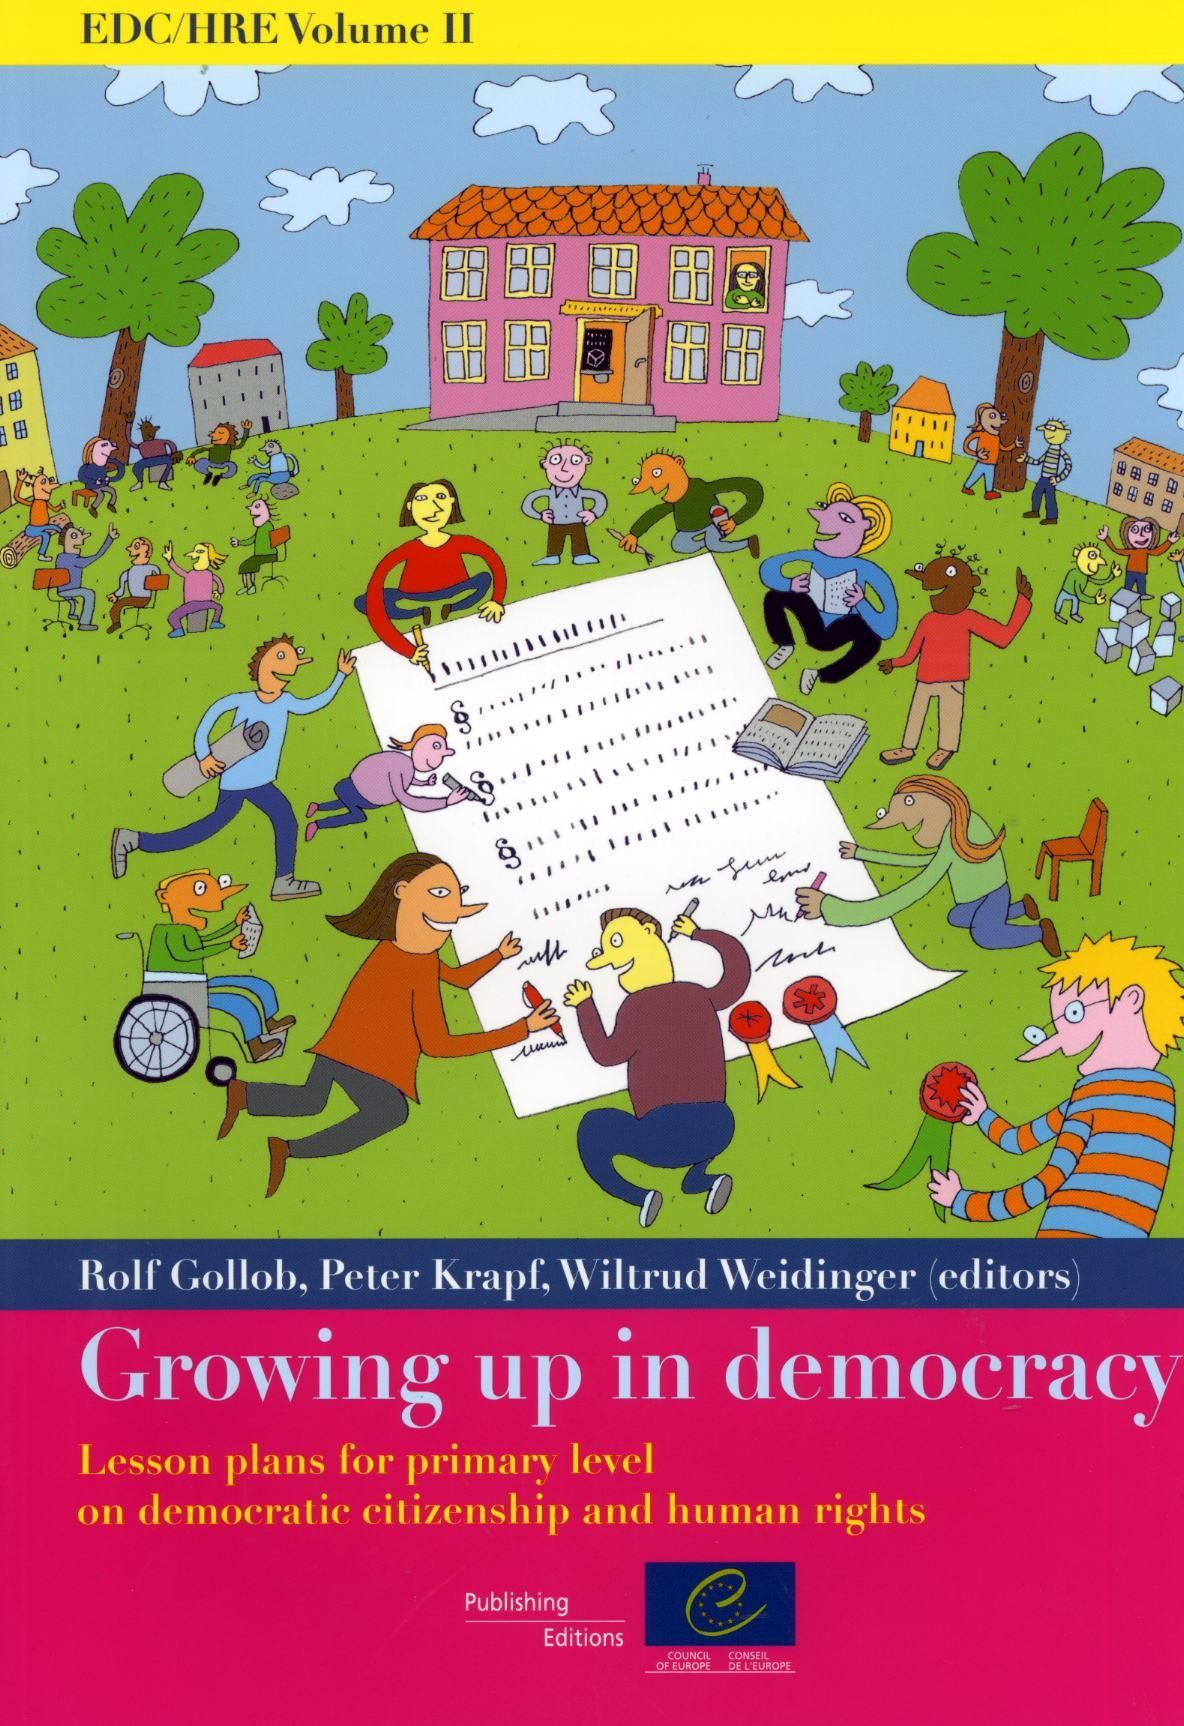 EDC/HRE Volume II: Growing up in democracy - Lesson plans for primary level on democratic citizenship and human rights